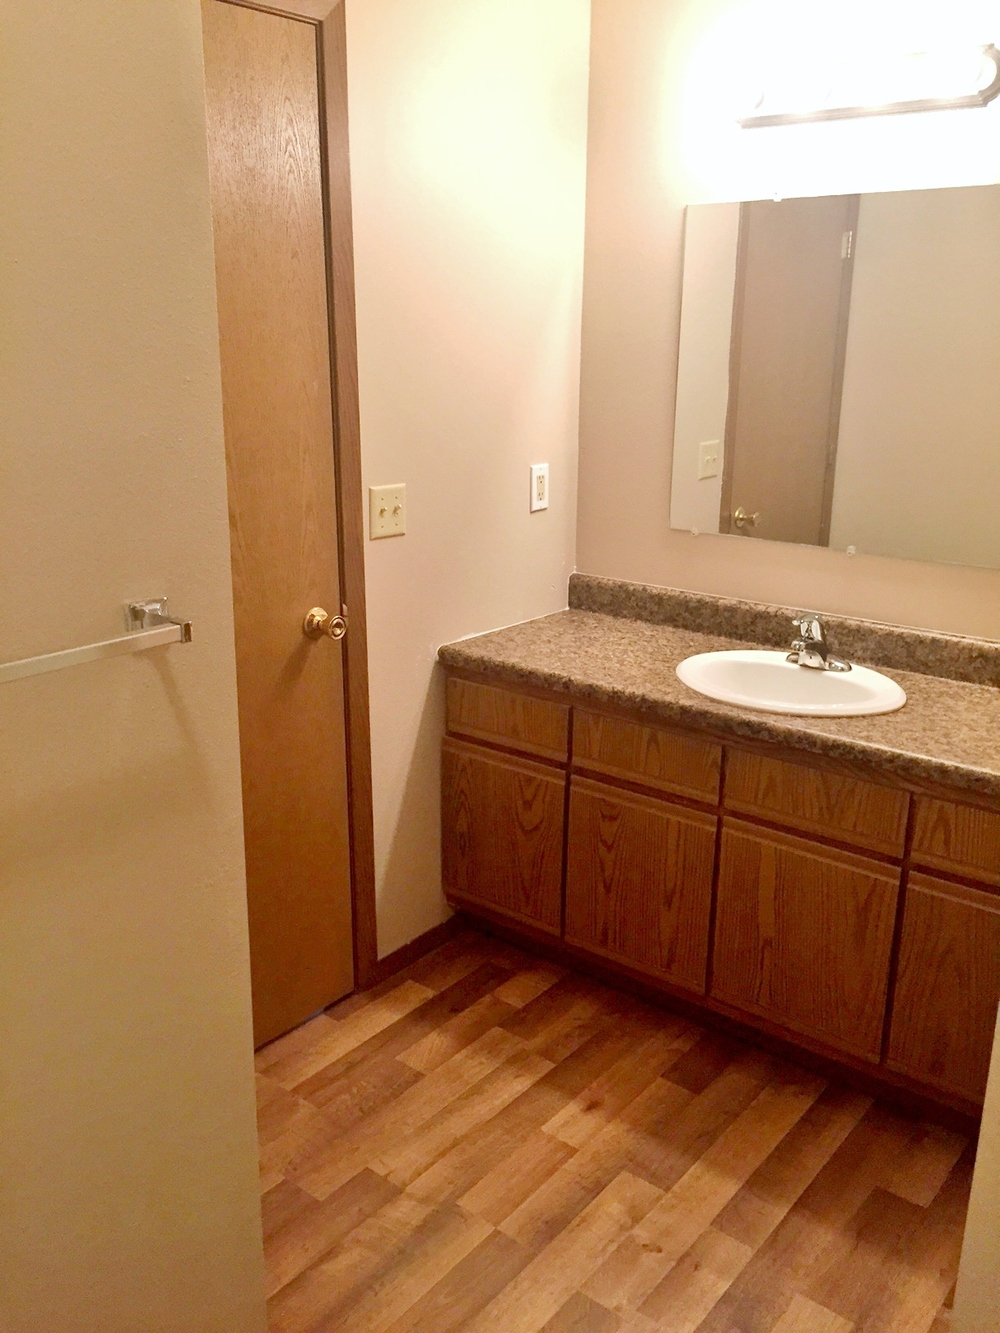 Southern Cross Apartments in Rapid City, SD - bathroom